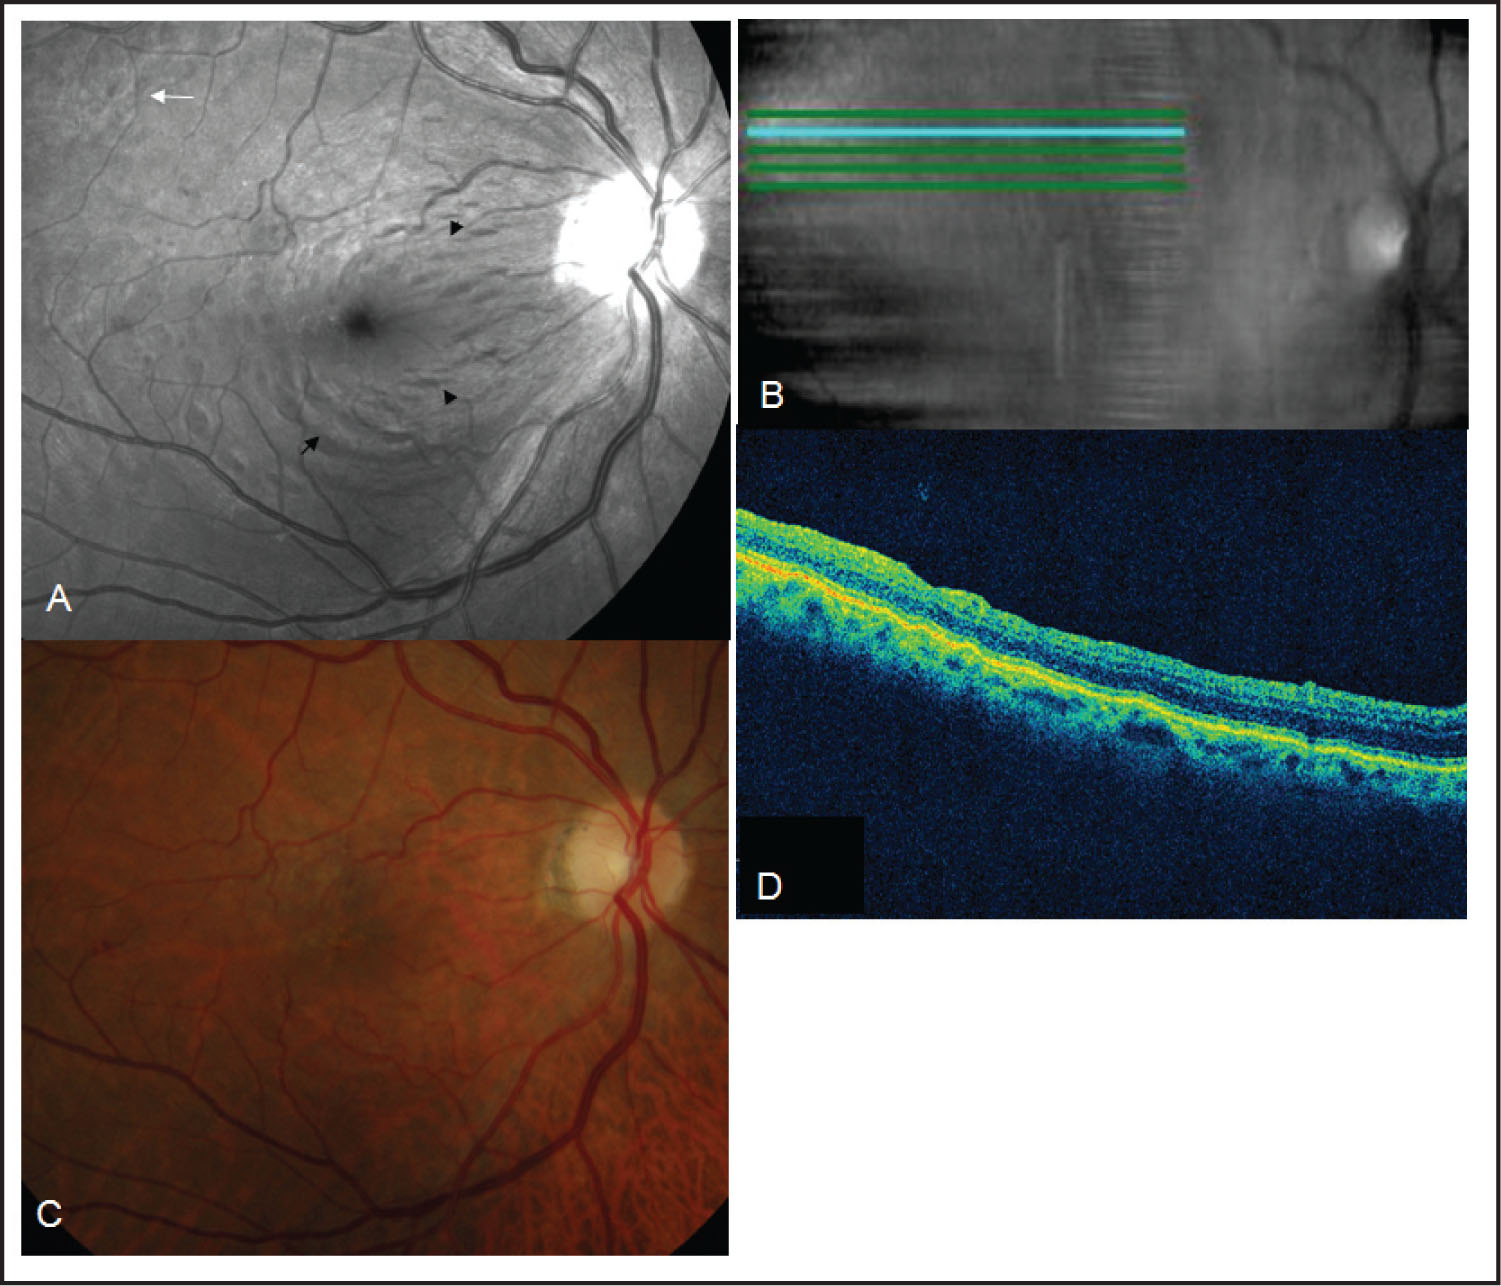 Postoperative Findings in Case 2. (A) Blue Reflectance Fundus Photograph Showing Areas of Alveolar Imprints Remaining (white Arrow). Note the Dissociated Optic Nerve Fiber Layer Appearance of the Fundus (black Arrows) that Consists of Numerous Arcuate Striae Within the Posterior Pole in the Direction of the Optic Nerve Fibers and Slightly Darker than the Surrounding Retina. (B) The Corresponding Virtual Optical Coherence Tomography (OCT) Fundus Picture Acquired with Spectral Domain OCT and Correlated with Blue Reflectance Fundus Photograph. (C) Color Fundus Photograph Showing the Lamellar Microholes Are No Longer Visible After Surgery. (D) Scan Images with Spectral Domain OCT Revealed Normal Retinal Contour.